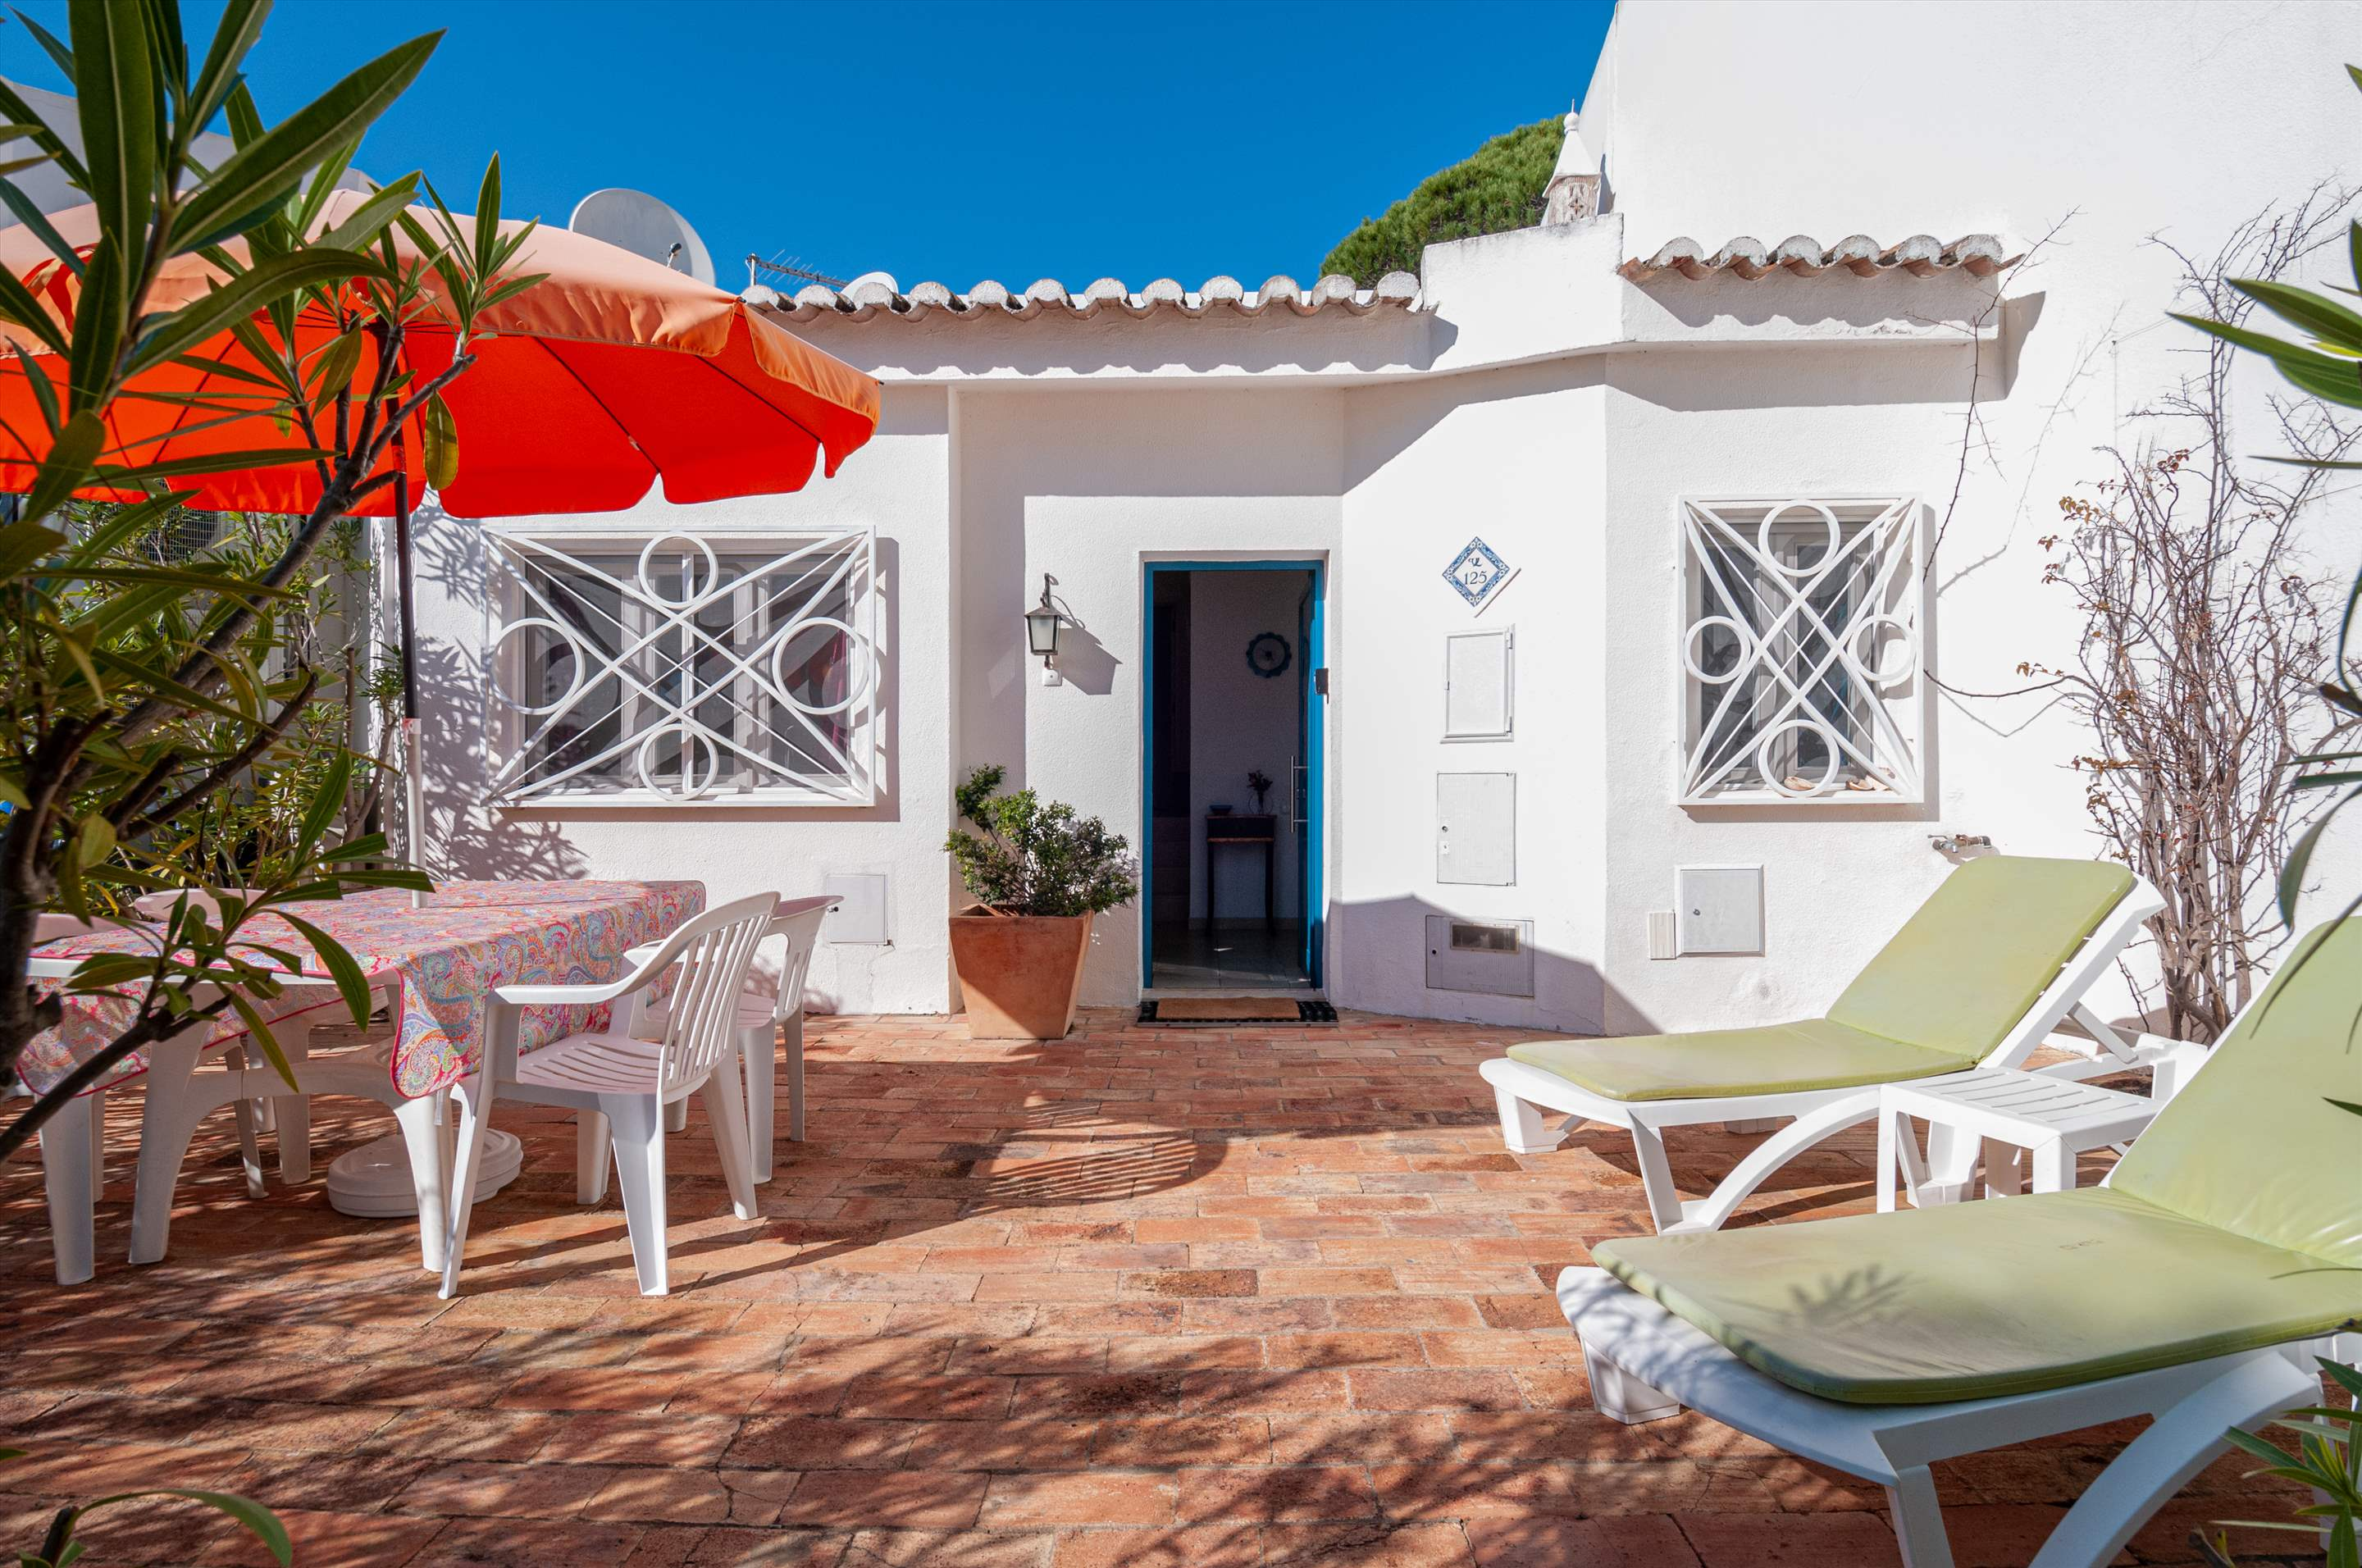 Villa Townhouse 2 Bedroom, 2 bedroom villa in Vale do Lobo, Algarve Photo #1